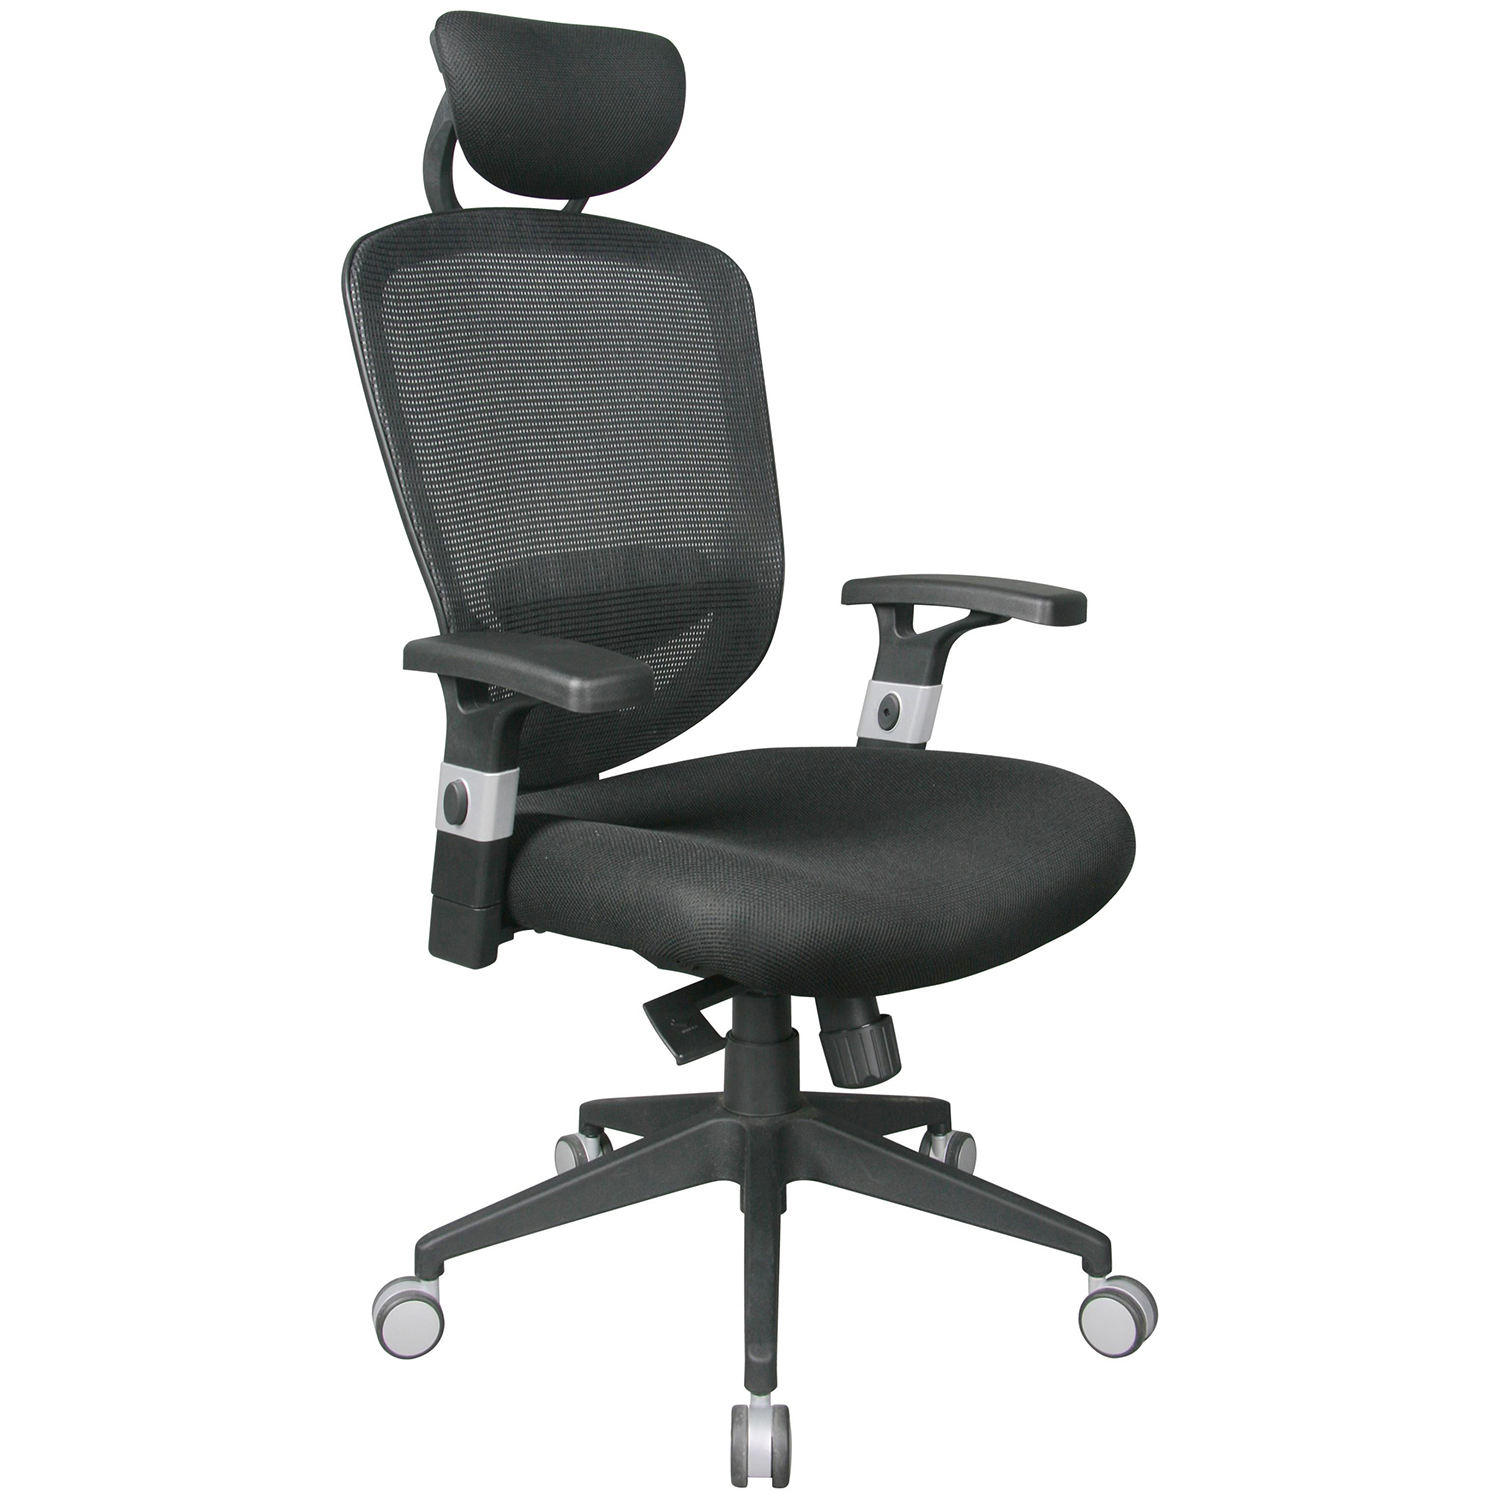 office chair with headrest high chairs for kitchen island tygerclaw air grid back adjustable